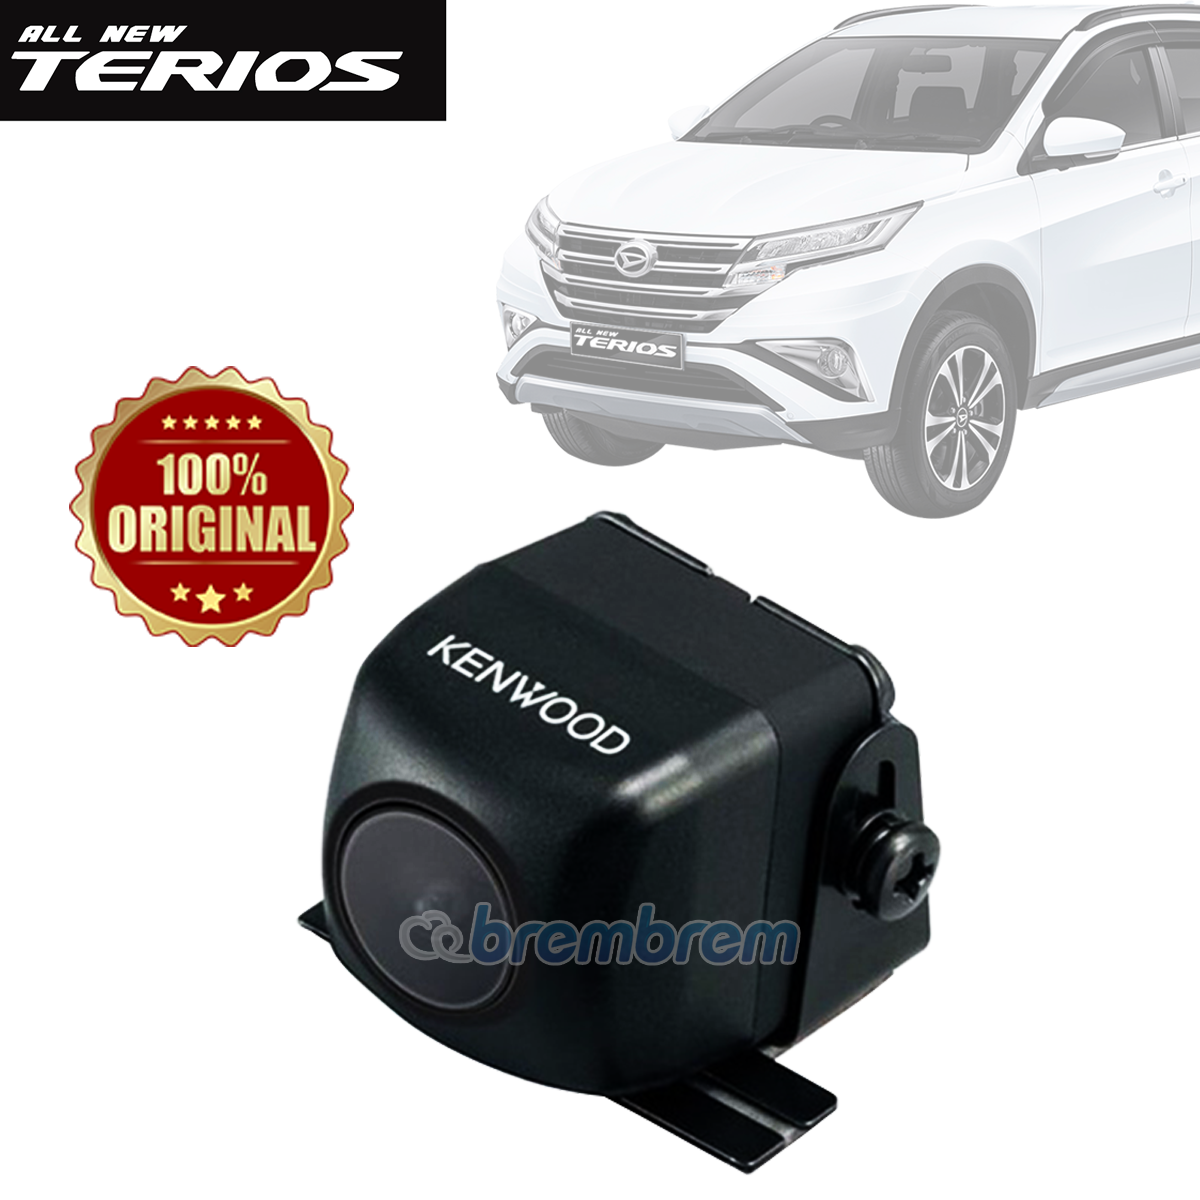 KENWOOD CMOS 130 - KAMERA MUNDUR DAIHATSU ALL NEW TERIOS